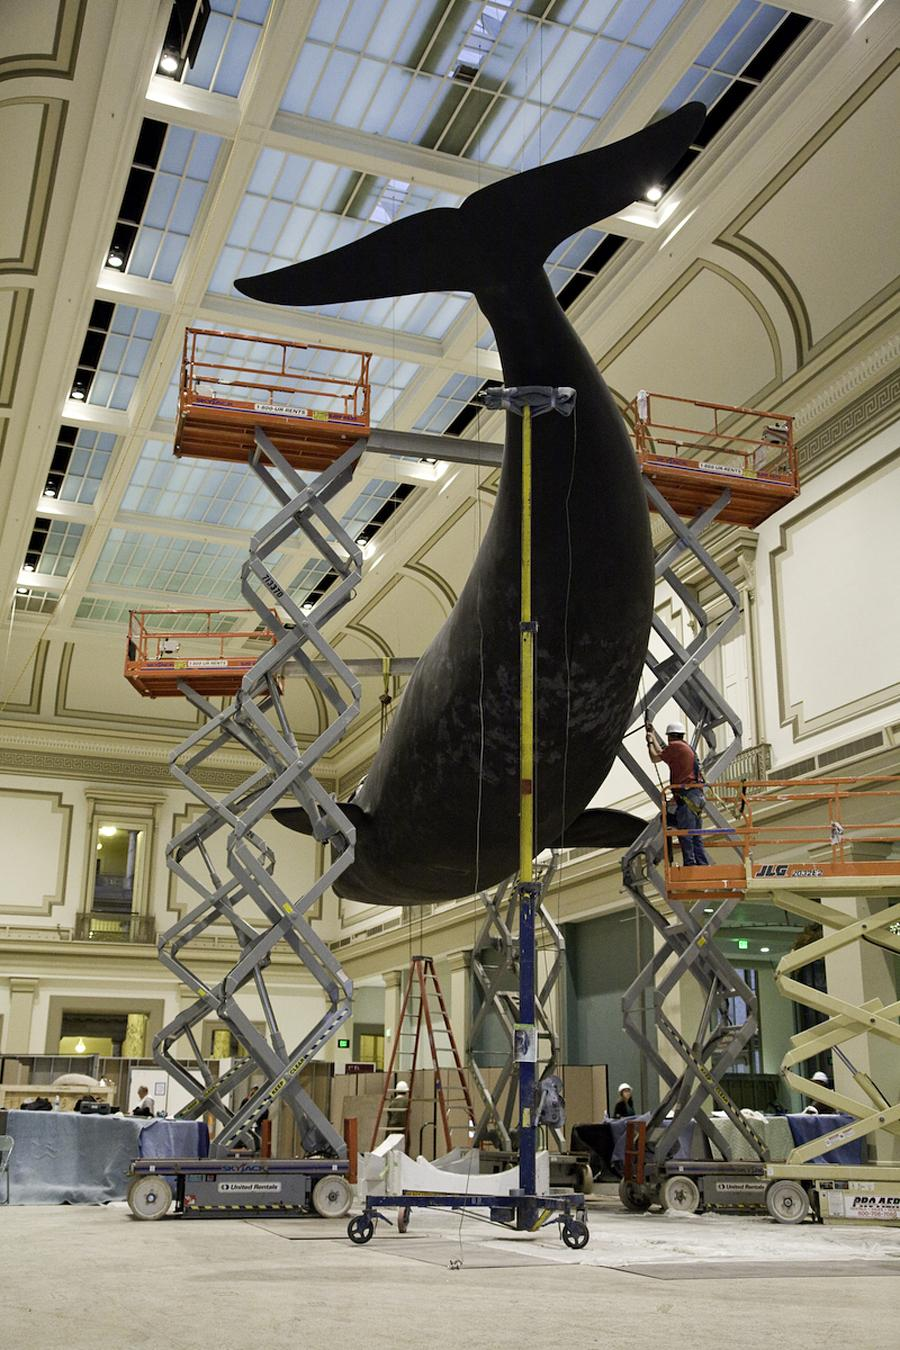 A crew works on creating a life-size, meticulously detailed model of the North Atlantic right whale Phoenix